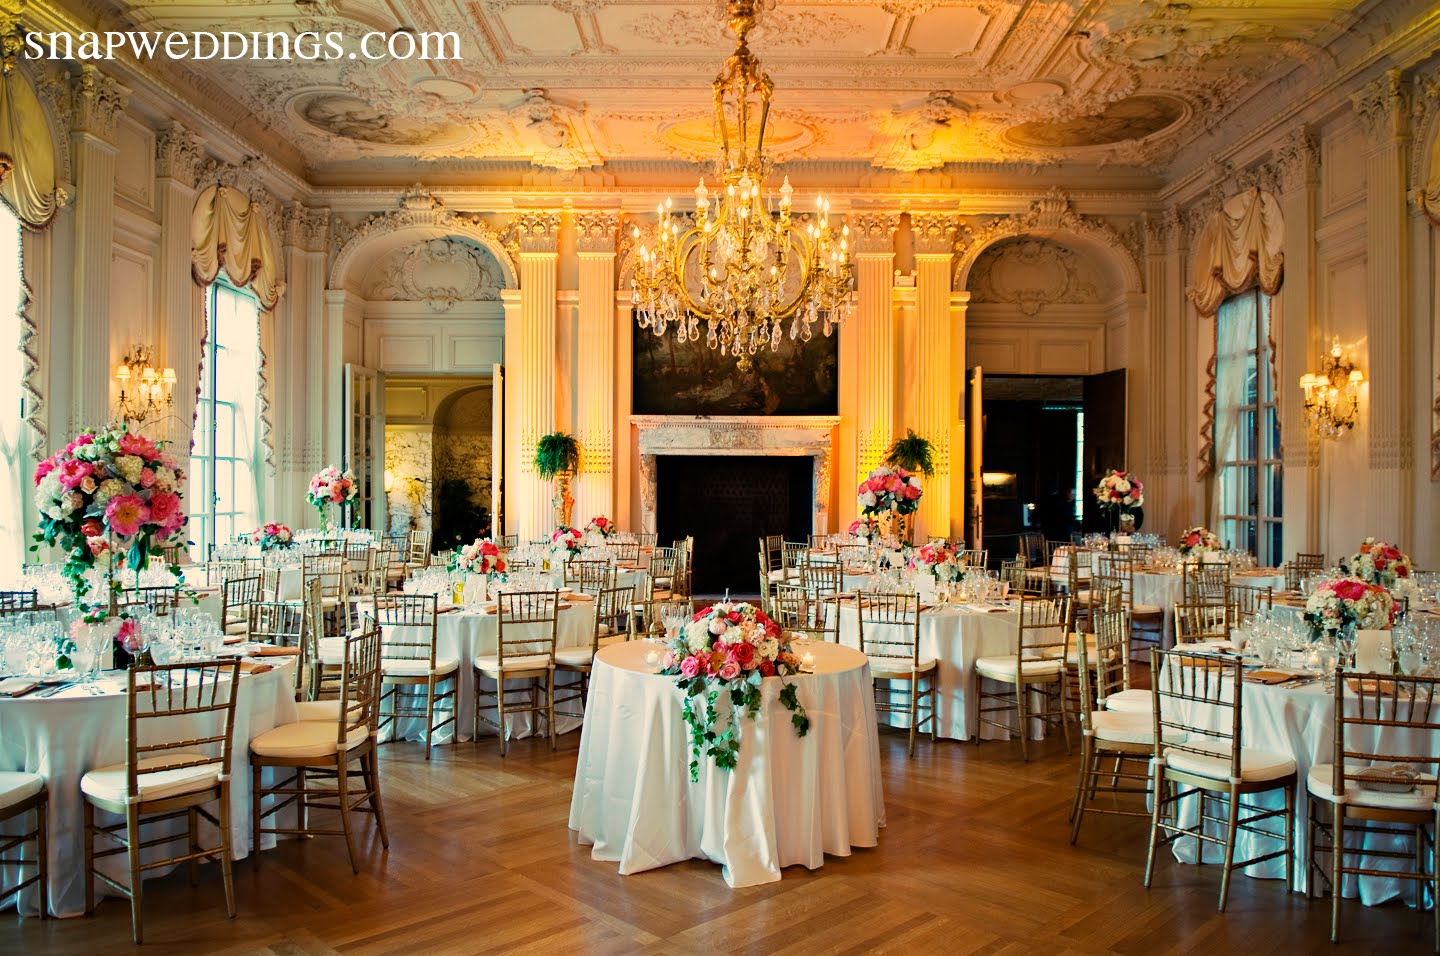 Wedding Venues Chicago.Bianca S Blog 5 Chicago Wedding Venues Ideal